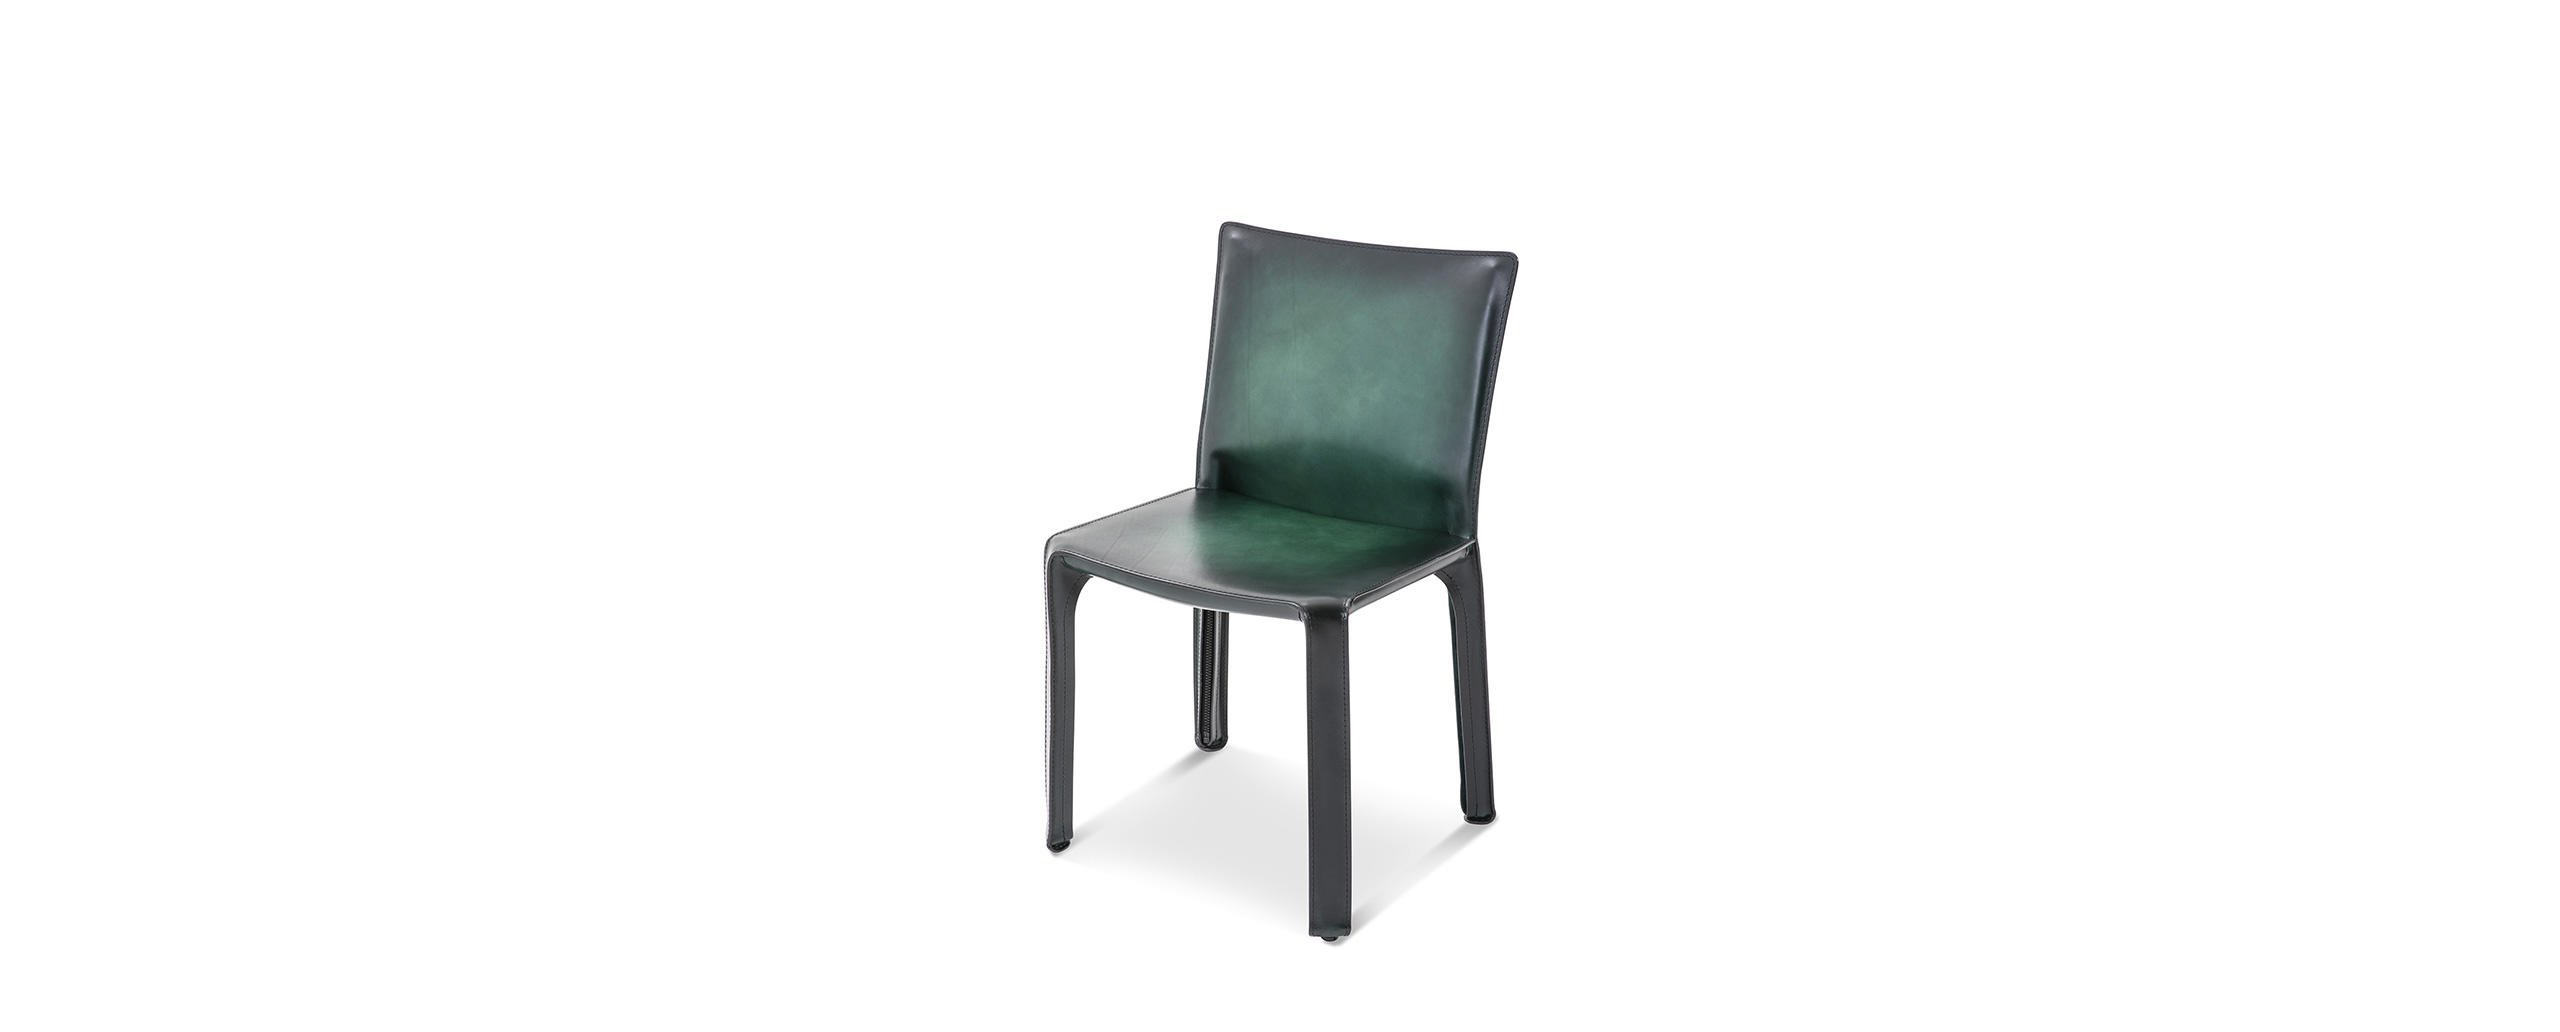 5_cassina_cab_mario_bellini_handcrafted_faded_effect_green